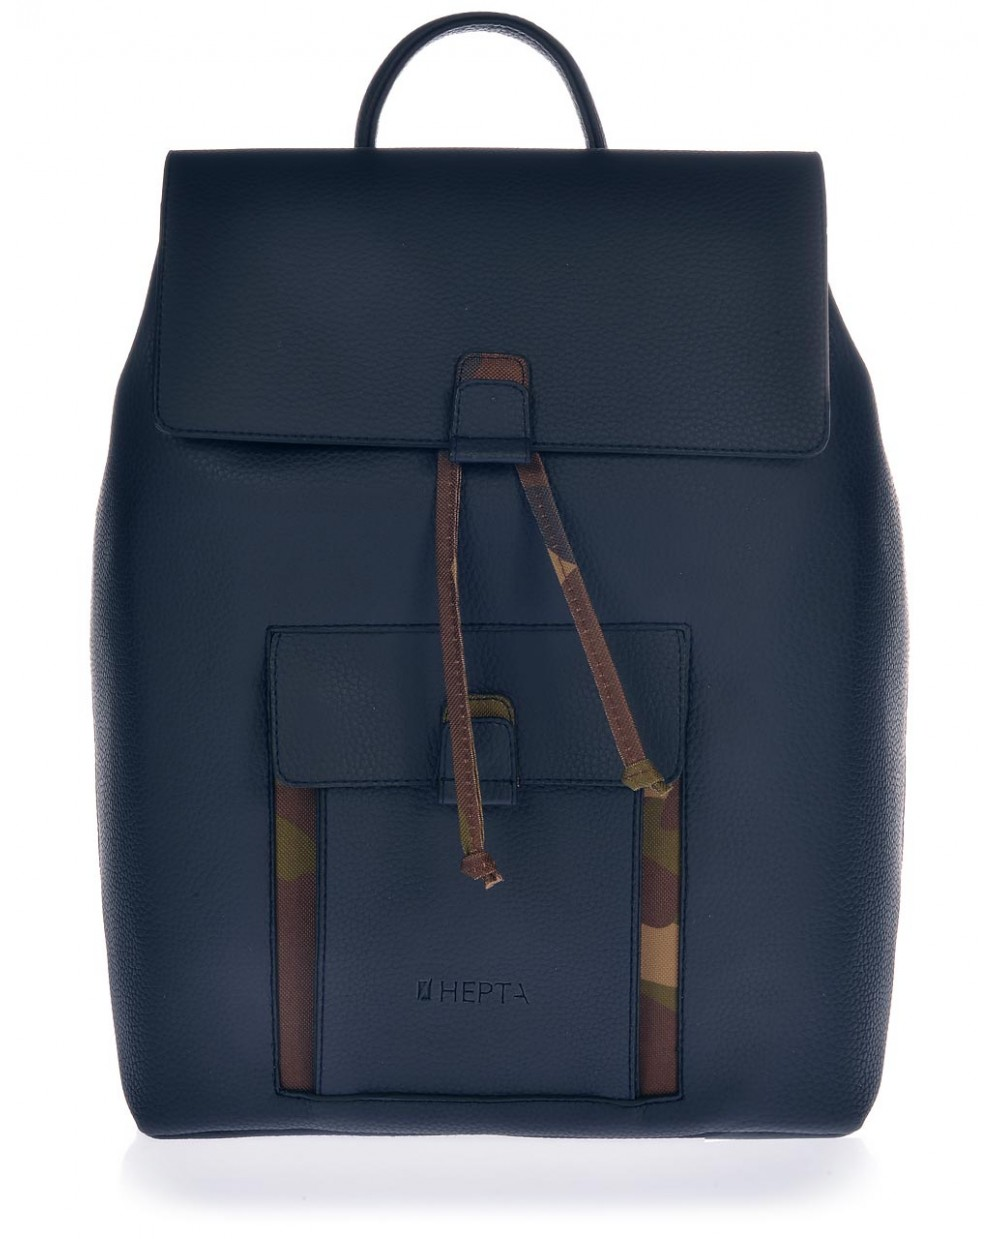 BACKPACK 9005